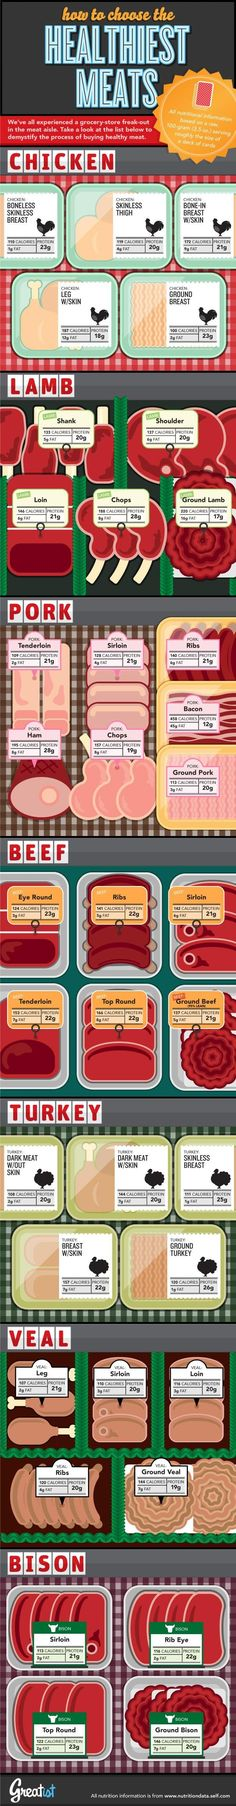 How to Choose the Healthiest Meats